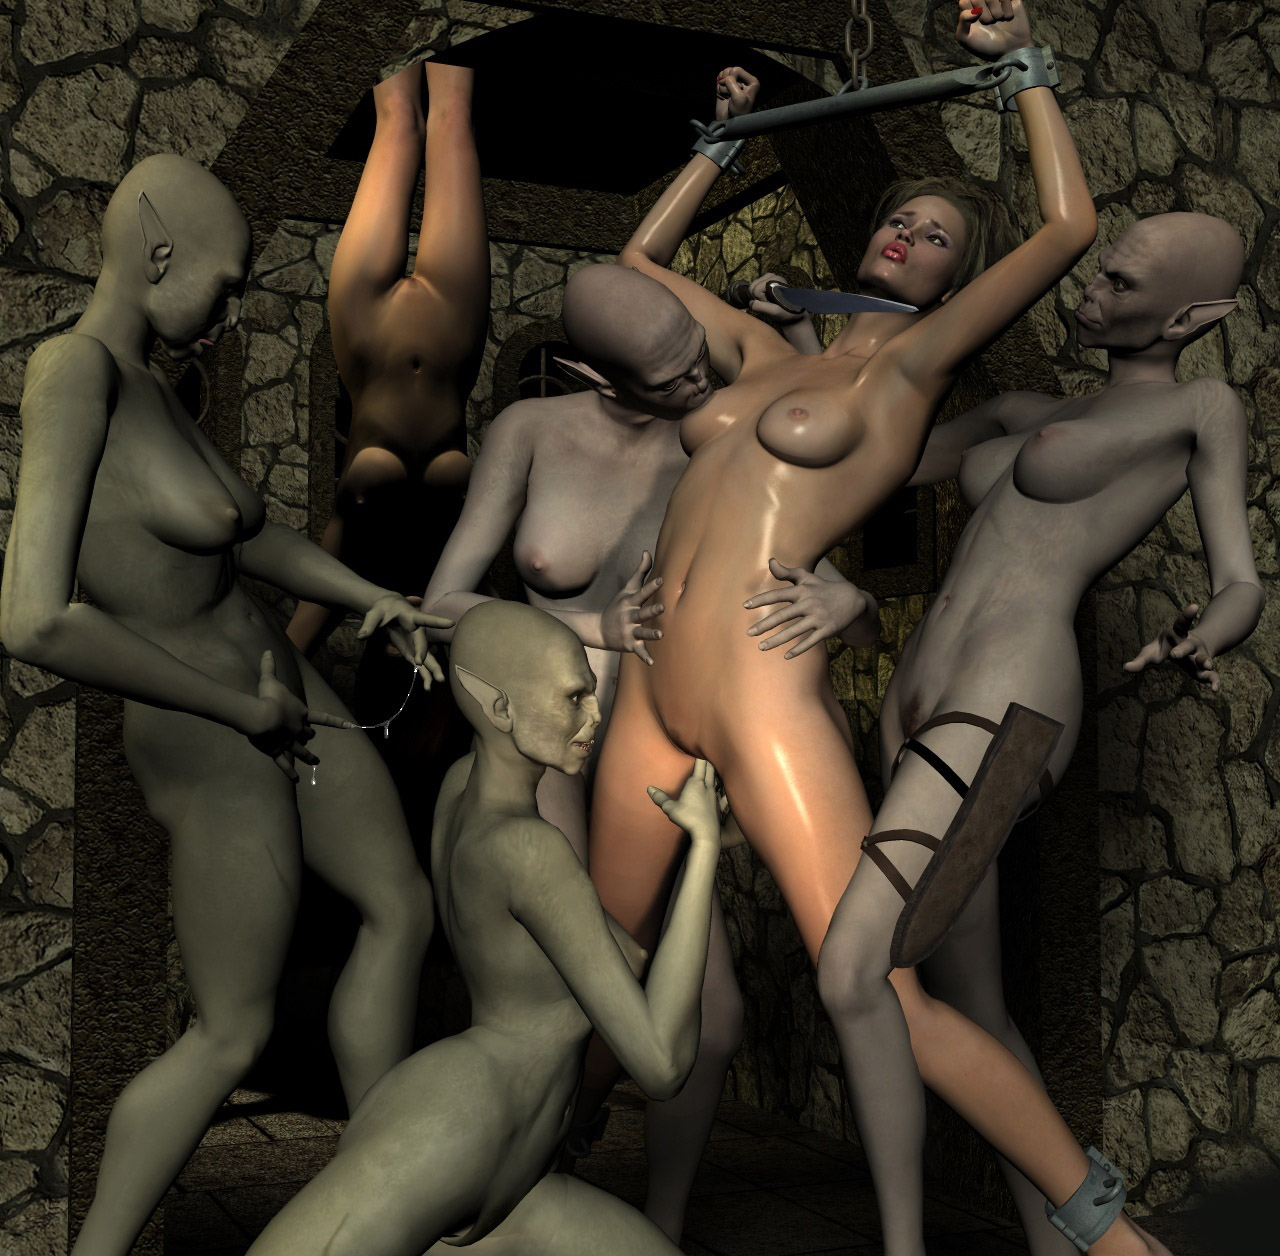 Monster 3d xxx art work pics sexy scenes